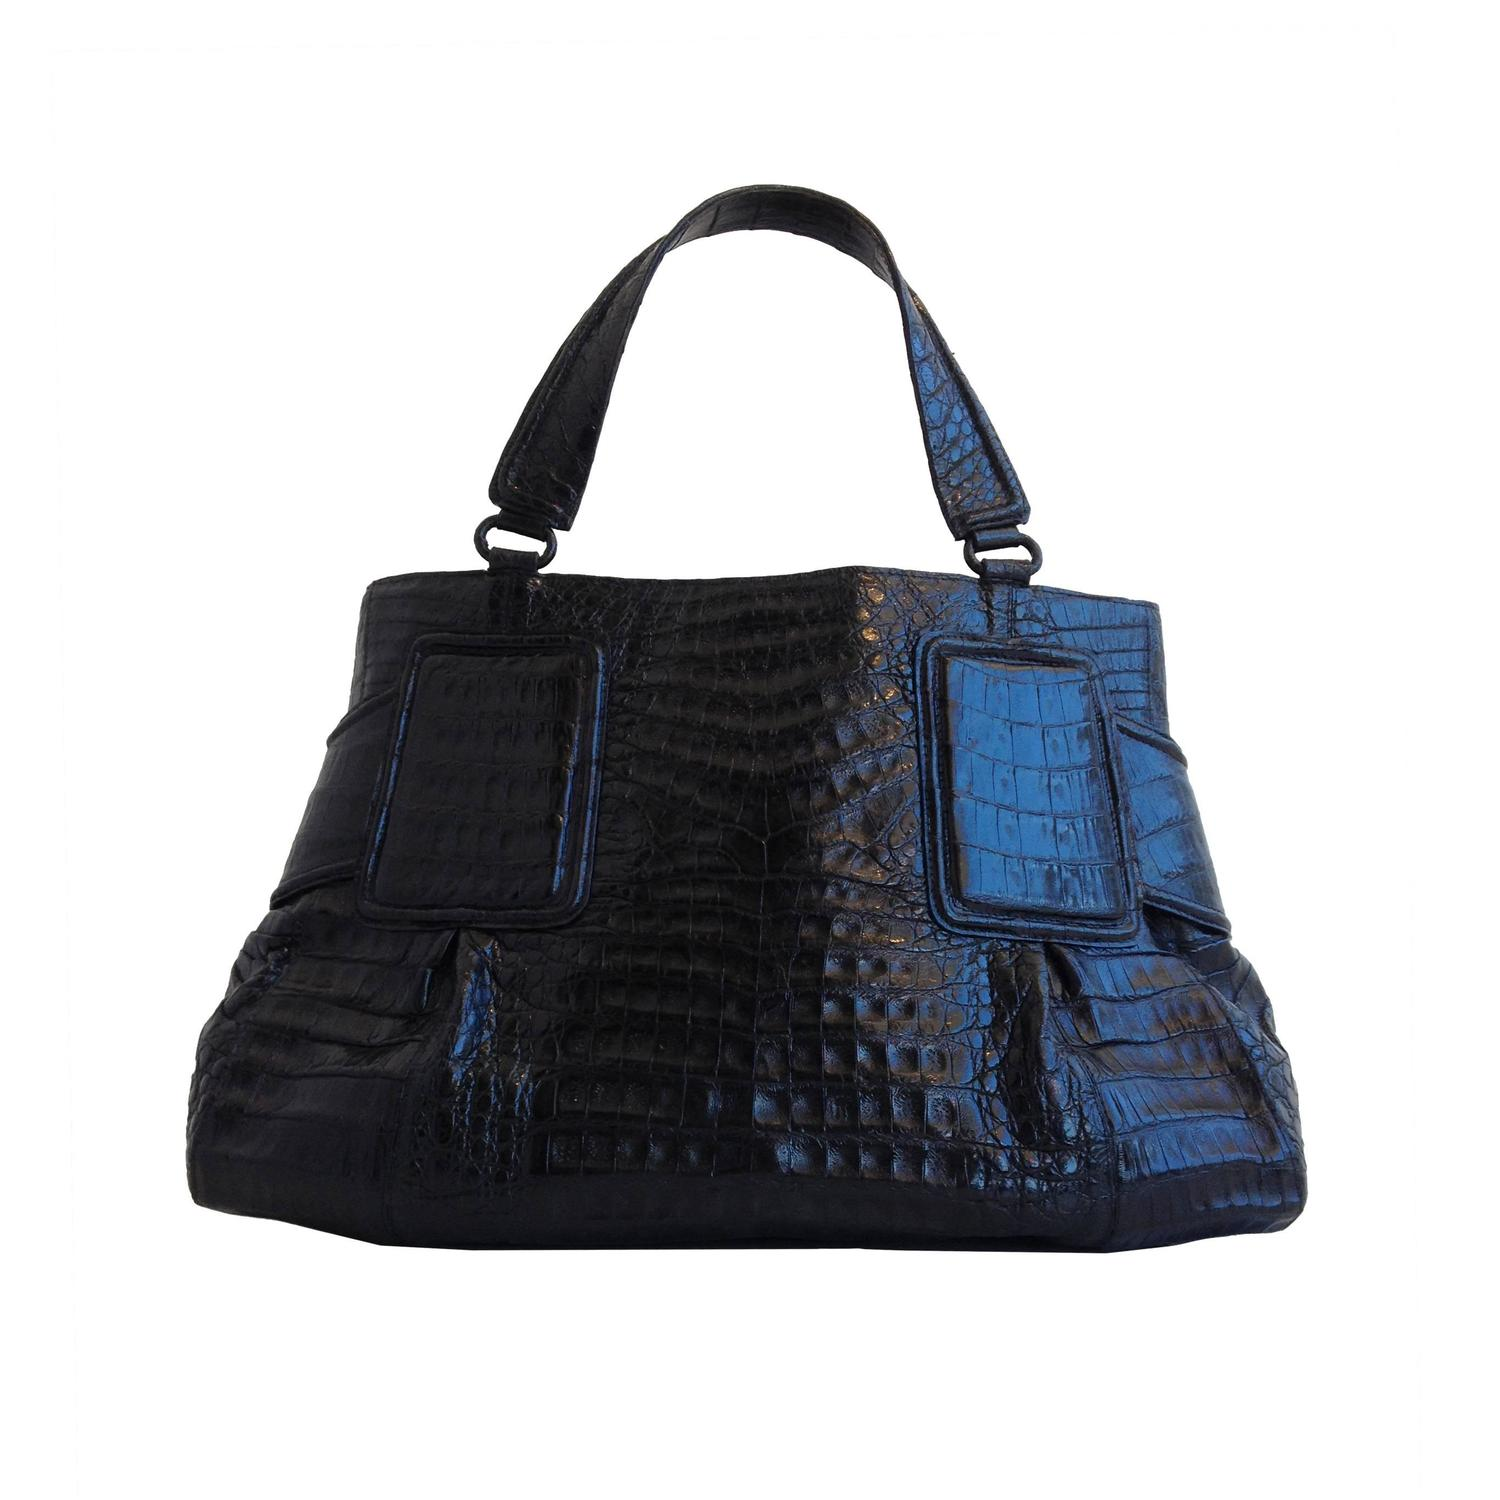 Nancy gonzalez black crocodile tote bag at 1stdibs for Nancy gonzalez crocodile tote